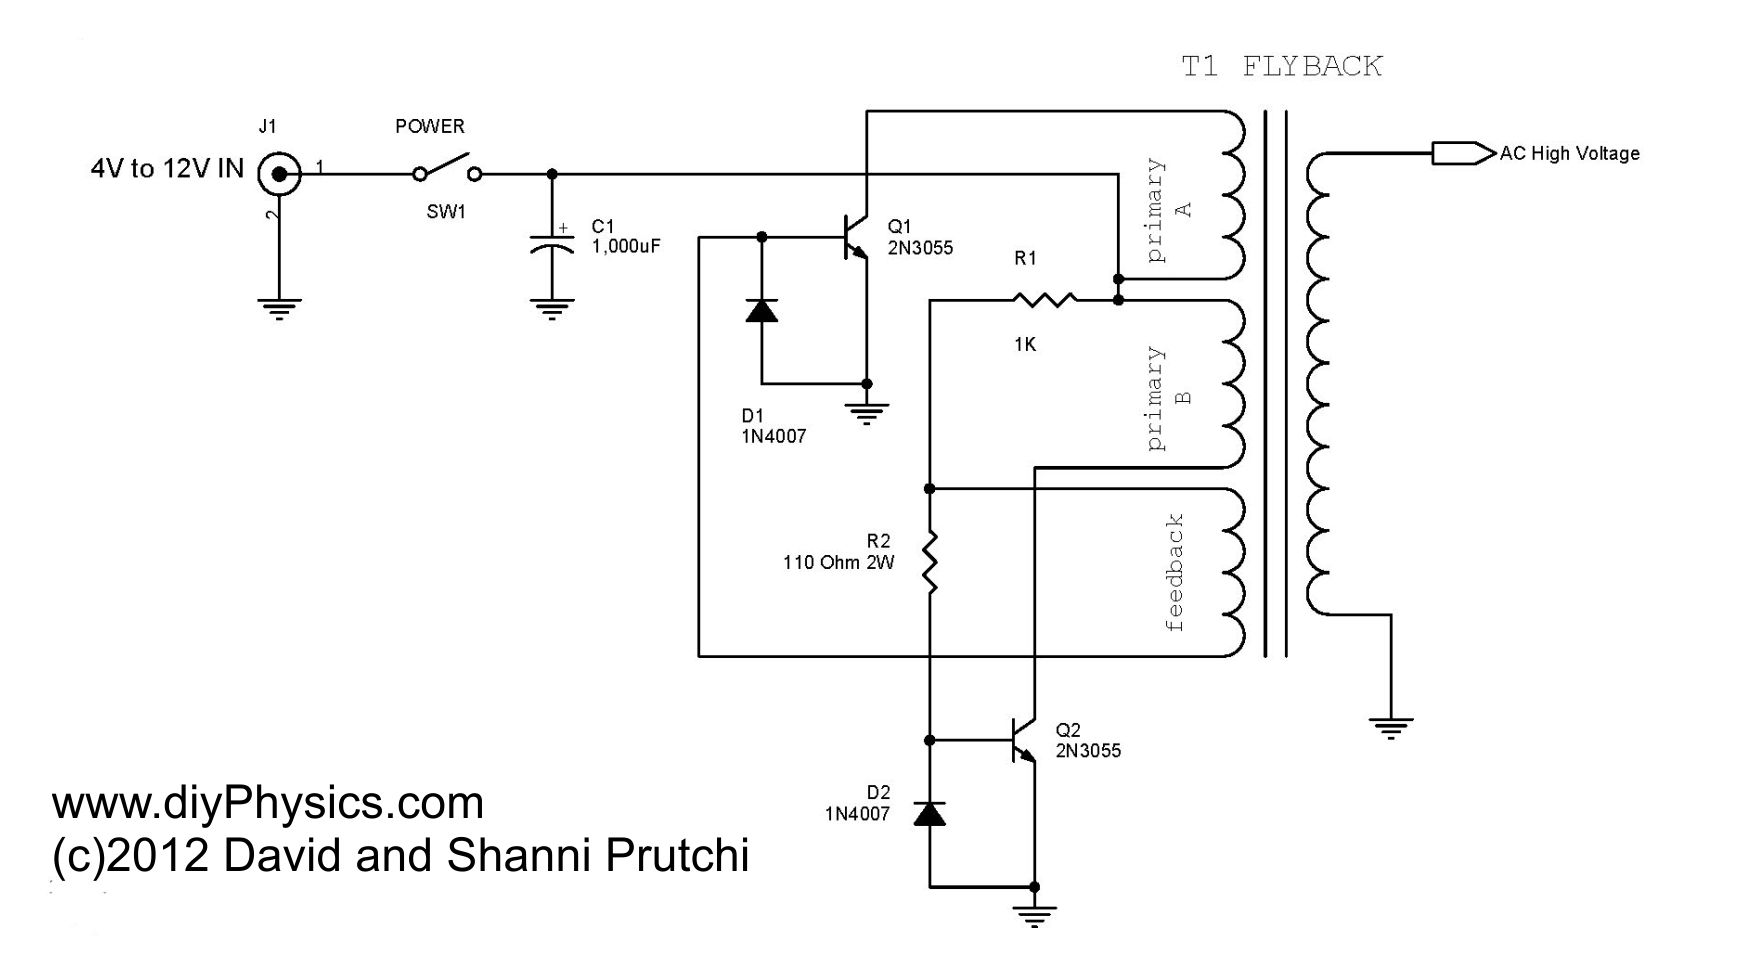 High voltage AC driver for 250 kV DC power supply by David and Shanni  Prutchi